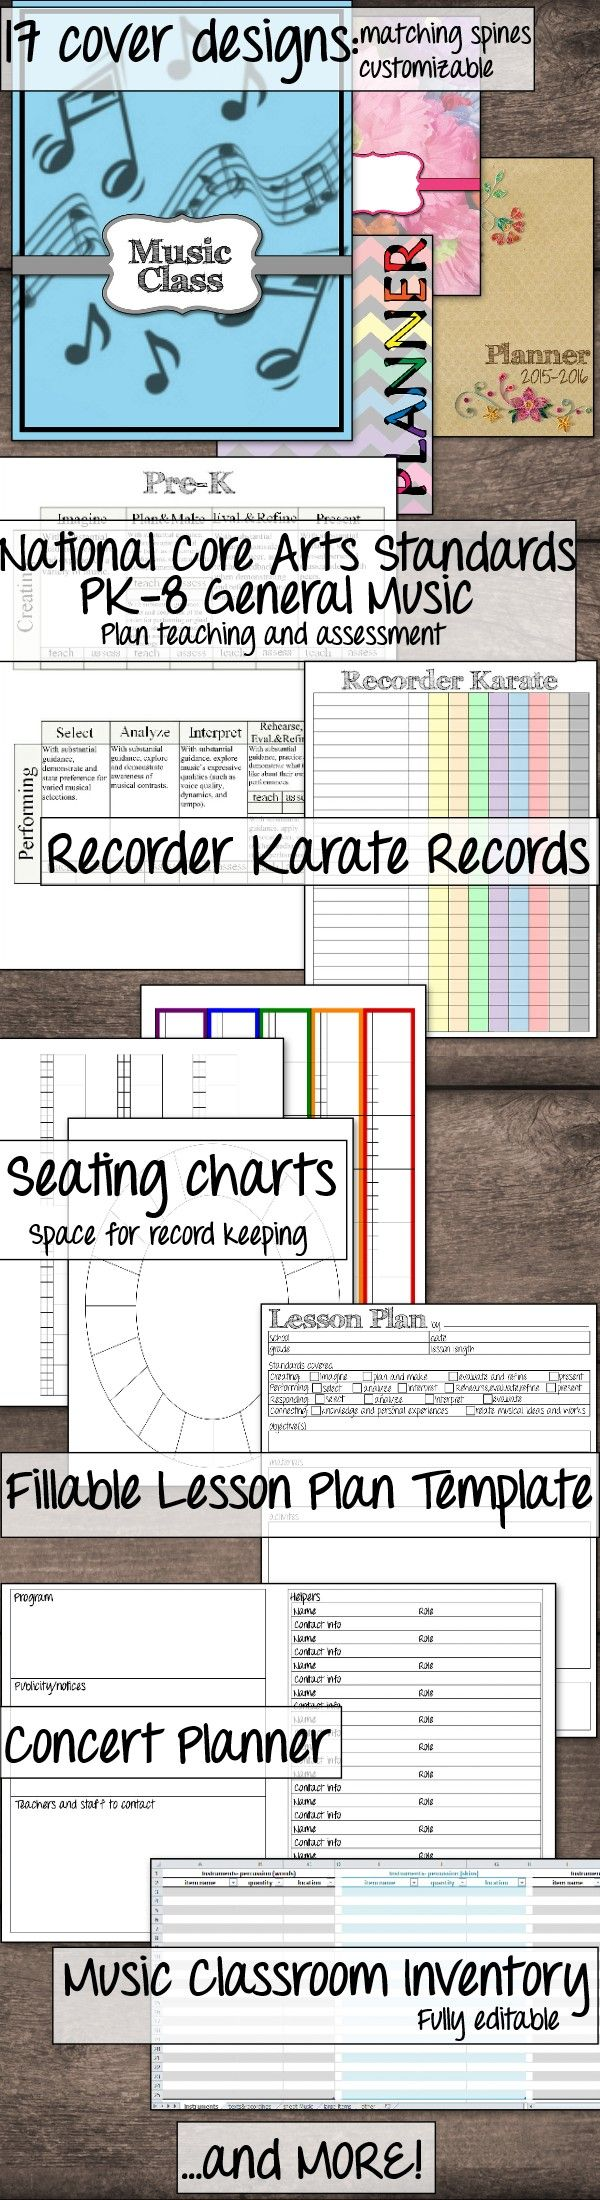 Everything you need to get organized in your general music class! PDF and powerpoint formats. Includes 34 cover designs (titled and blank), matching spine labels,35 seating charts, Recorder Karate records, concert planner, national music standards planning sheets, IEP at a glance, and music classroom inventory.